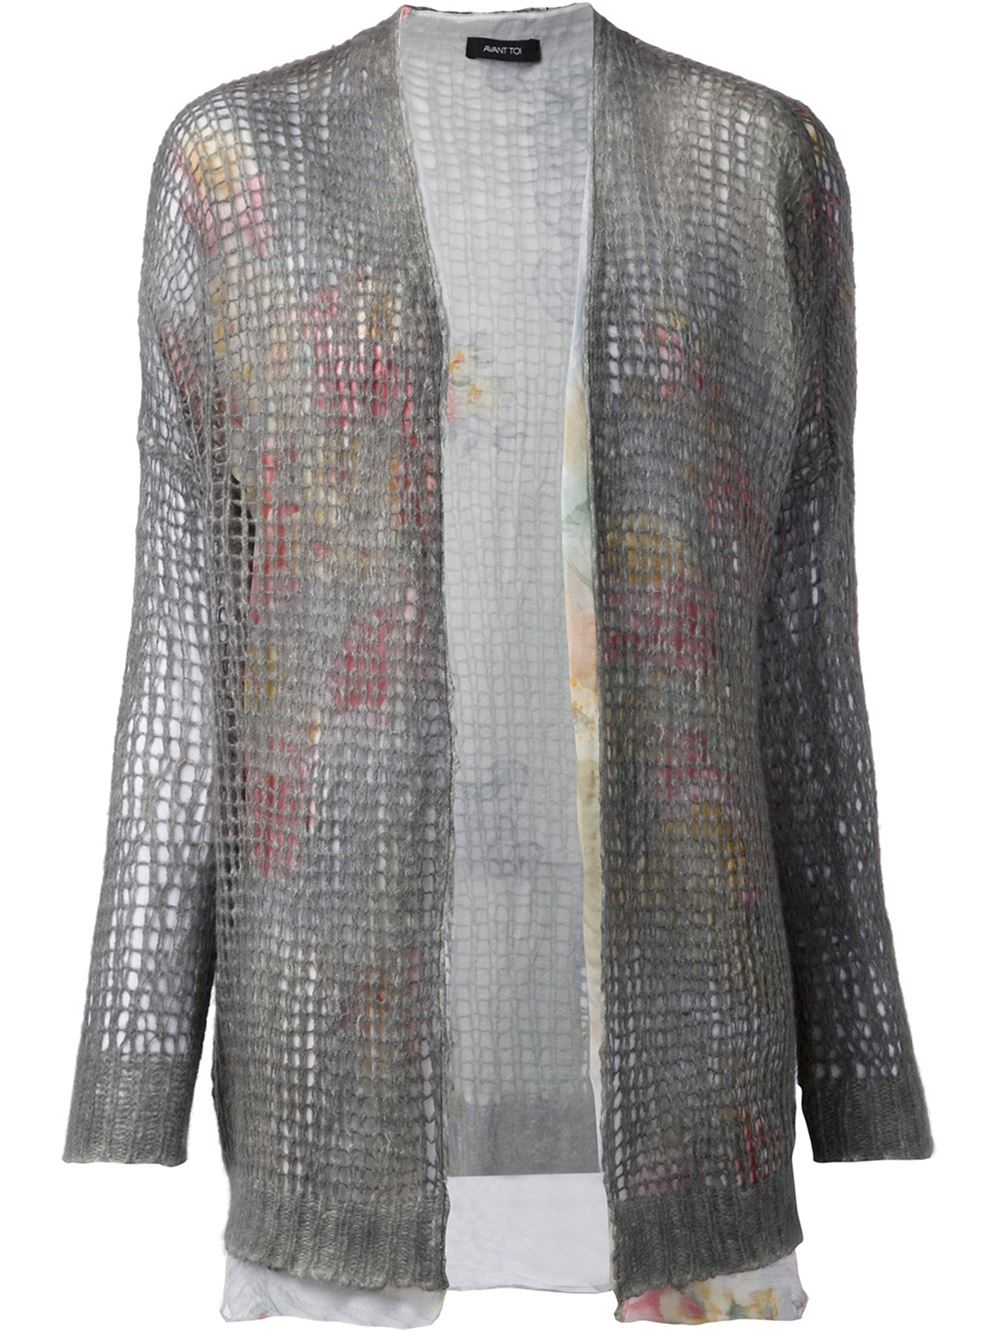 Avant toi Layered Open Knit Cardigan in Gray | Lyst